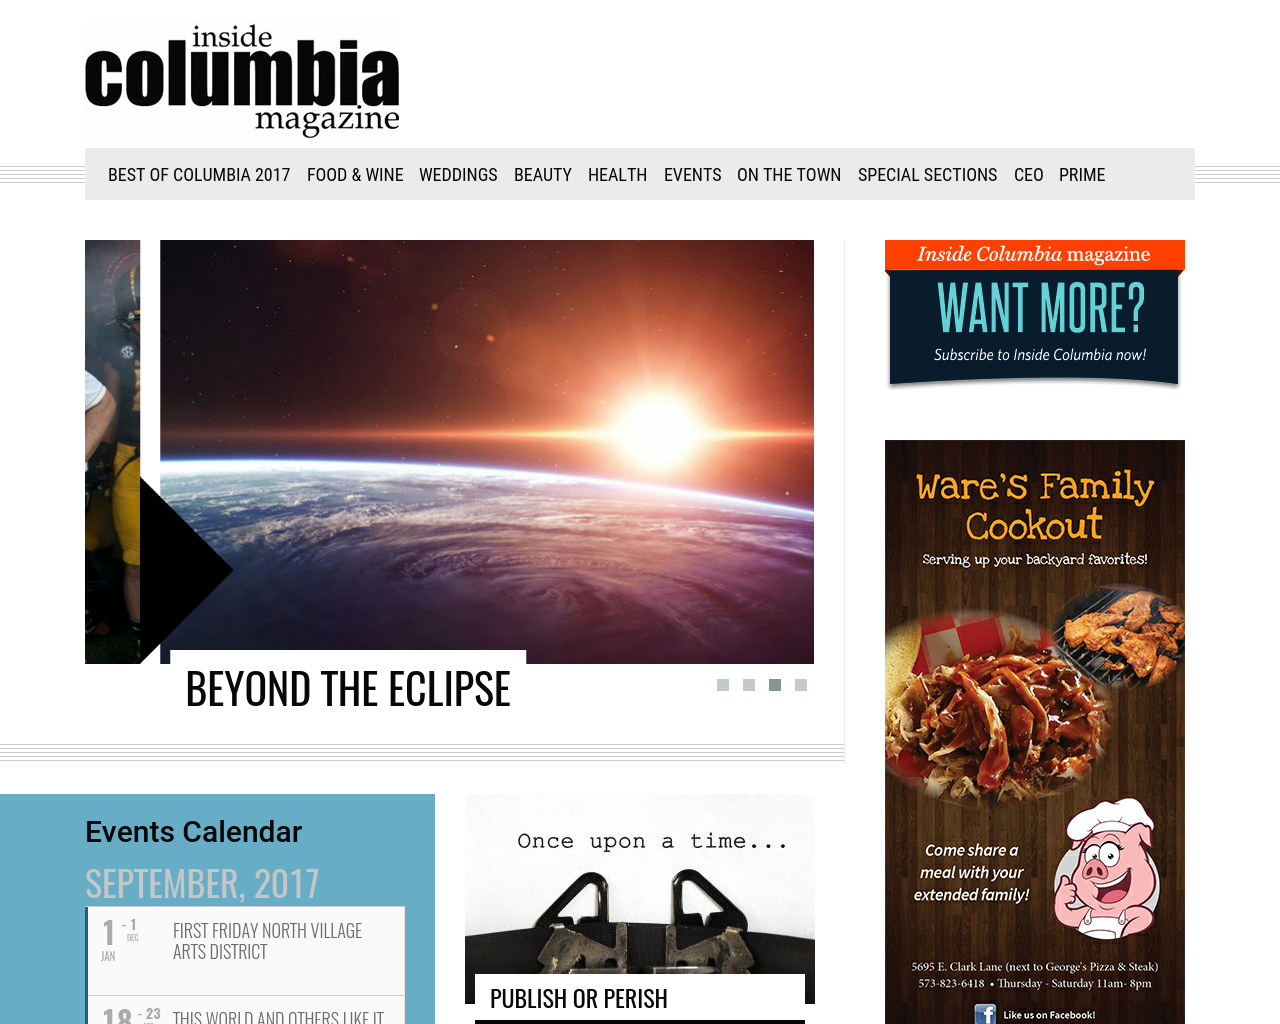 Inside-Columbia-Magazine-Advertising-Reviews-Pricing